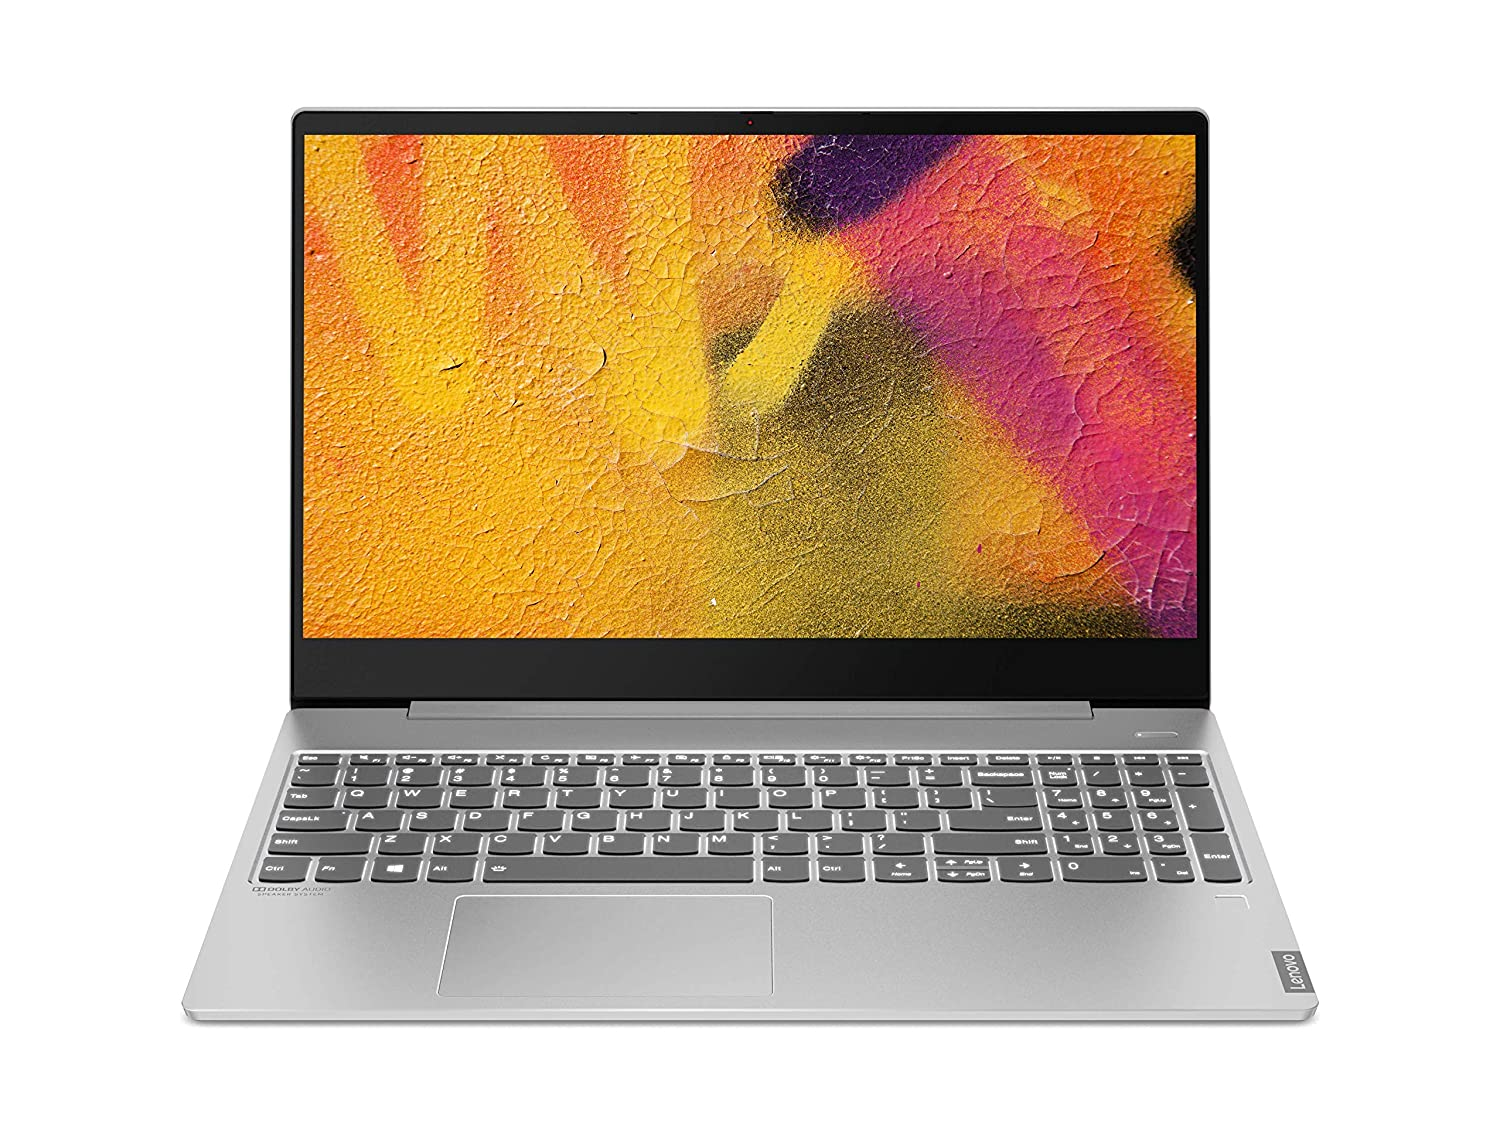 Lenovo IdeaPad S540 10th Gen Intel Core i5 15.6-inch Full HD IPS Thin and Light Laptop (8GB/1TB HDD + 256GB SSD/Windows 10/MS Office 2019/NVIDIA MX250 2GB Graphics/Mineral Grey/1.8Kg), 81NG002BIN